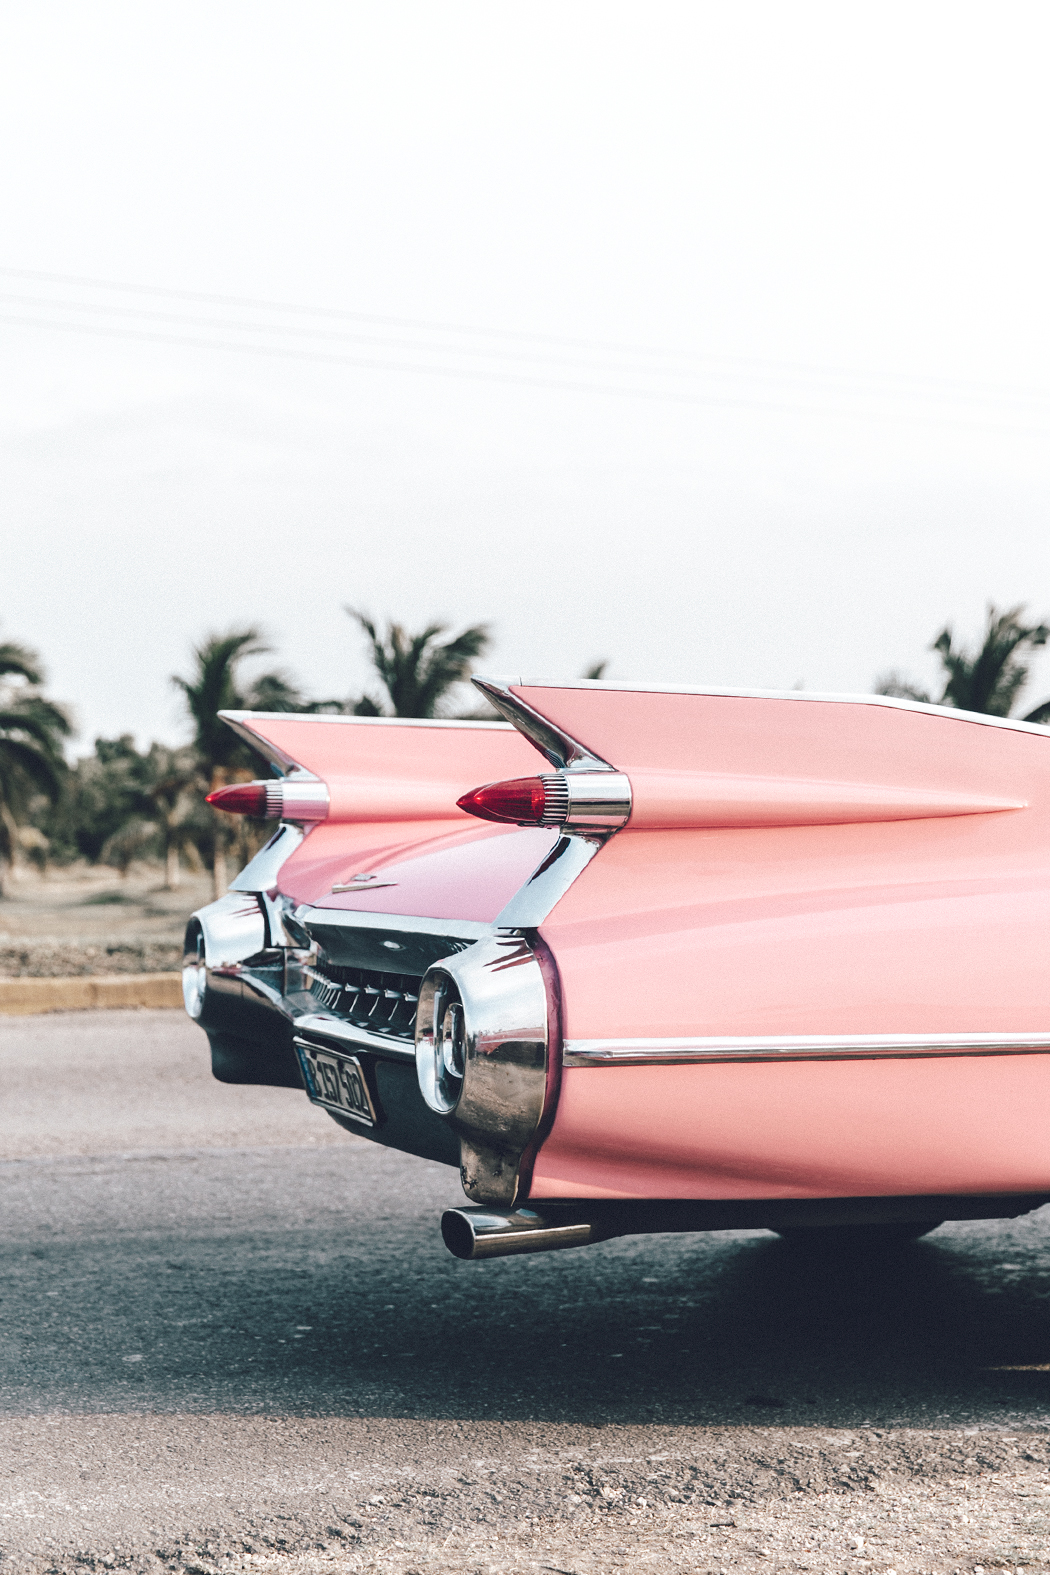 Cuba-Varadero-Vintage_Car-Silver_Dress-Floral_Scarf-Isabel_Marant_Sandals-Outfit-COllage_On_The_Road-10